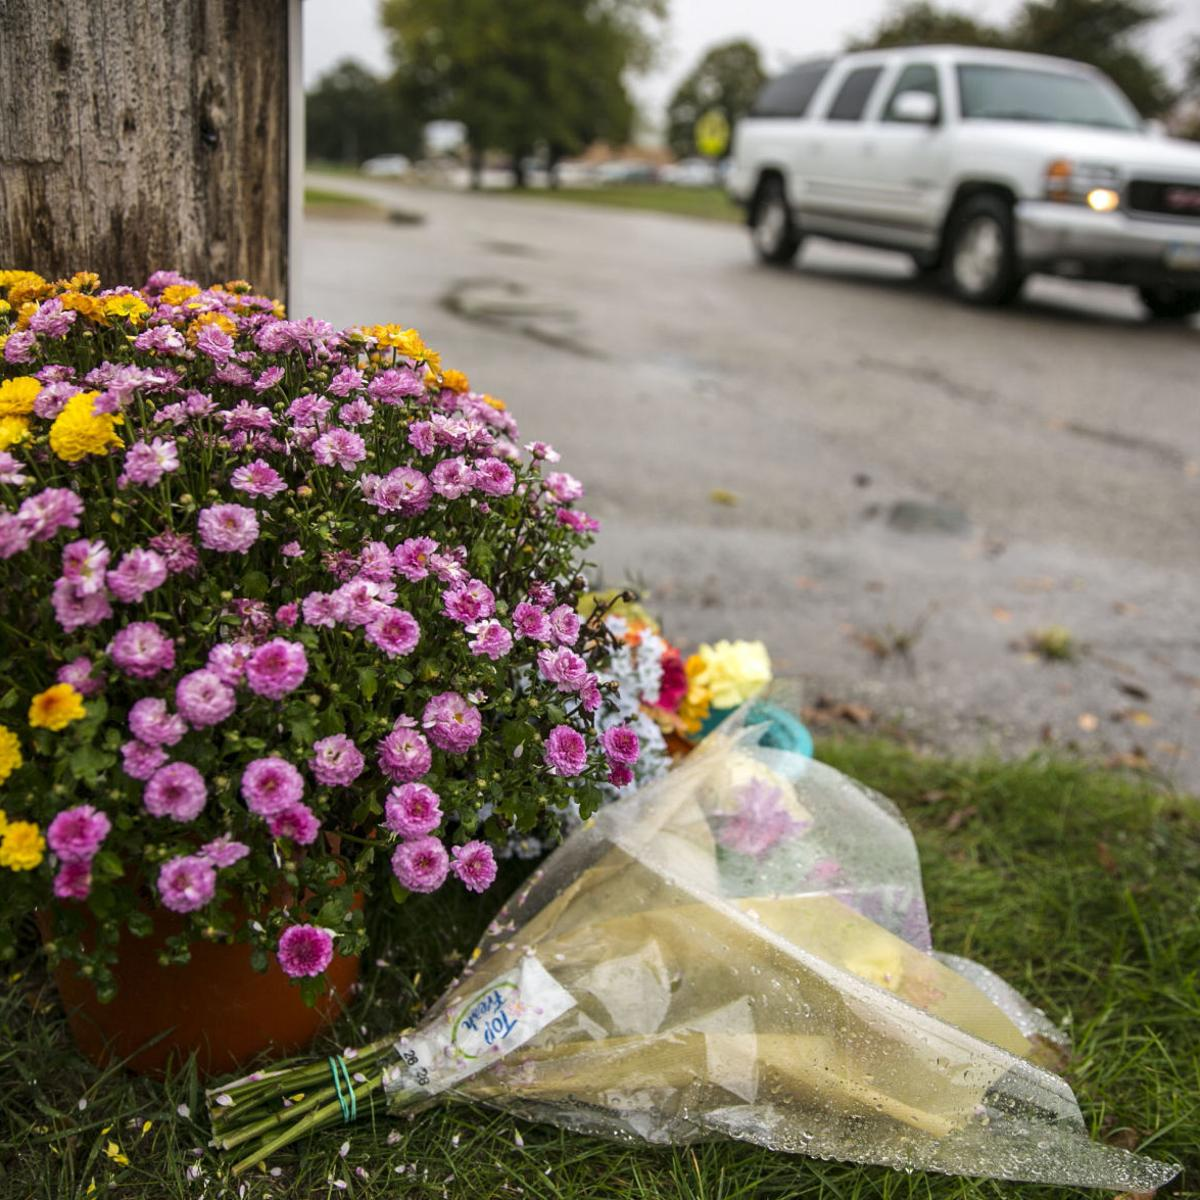 Search warrant issued for driver in fatal Mason City motorcycle